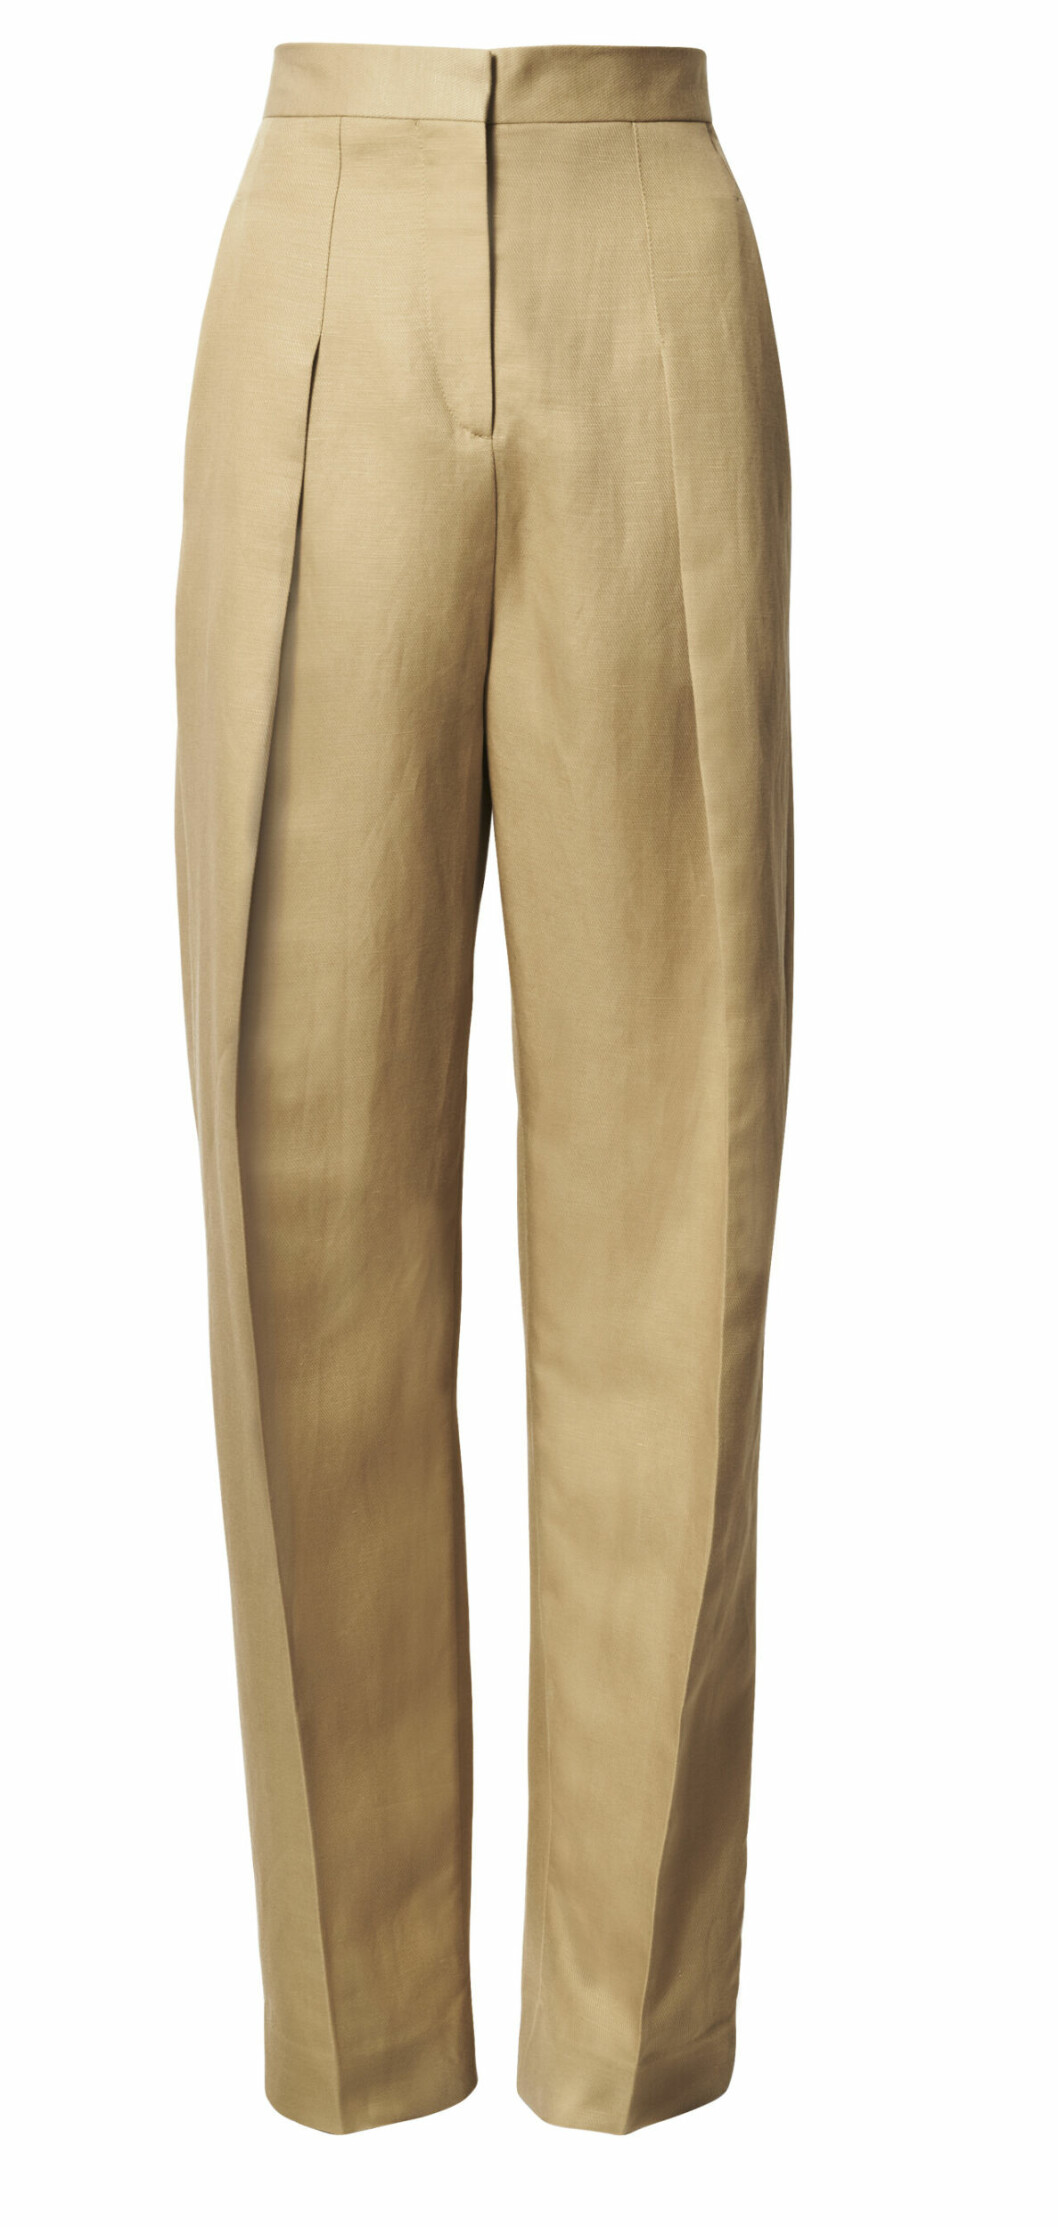 H&M conscious exclusive SS20 – beige byxor